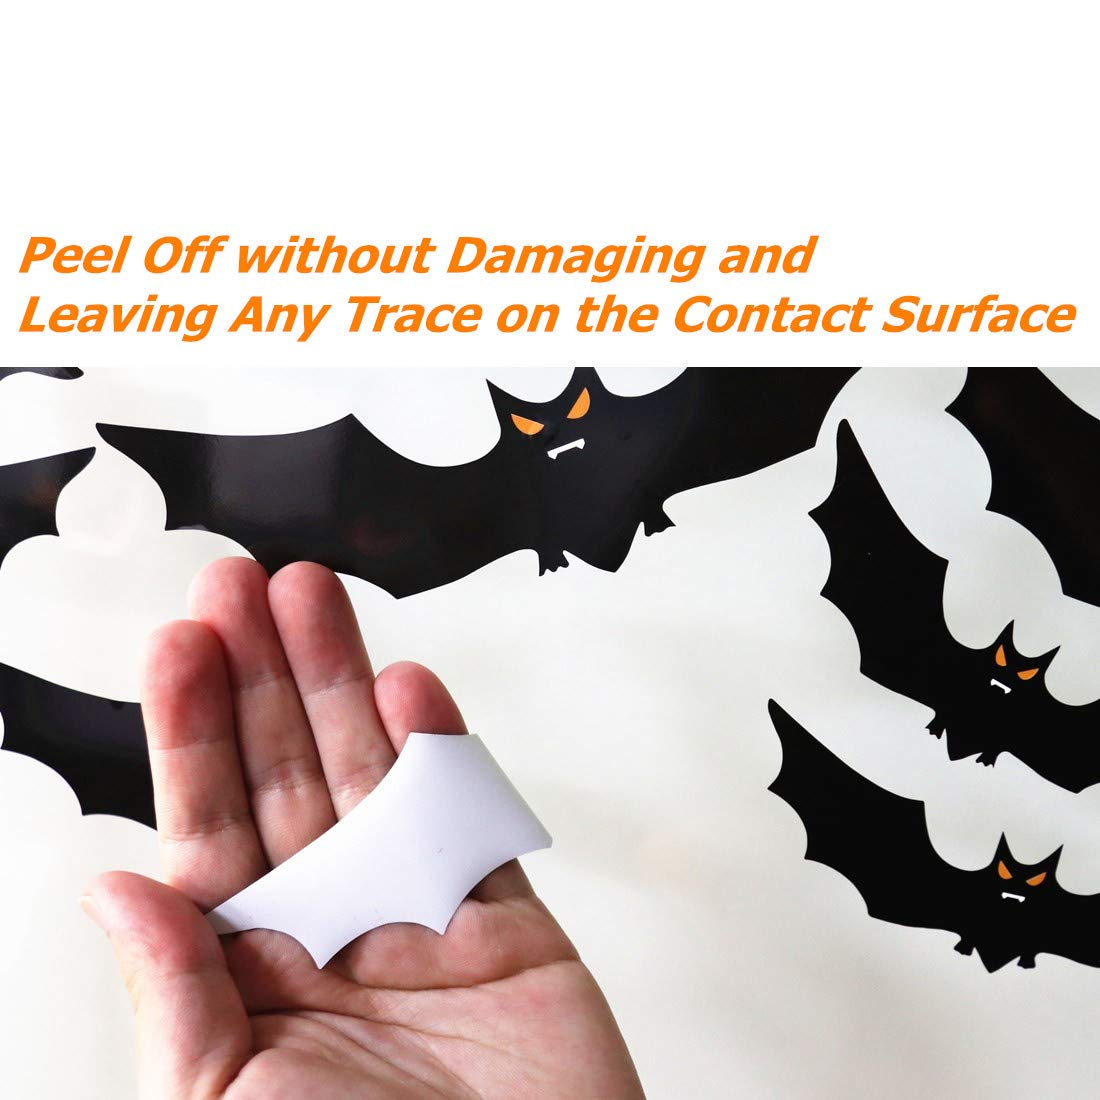 6 Sheet 59pcs Large Scary Silhouette Bats Spider Kids School Home Office Accessories Party Supplies Gifts Ivenf Halloween Decorations Window Clings Decor